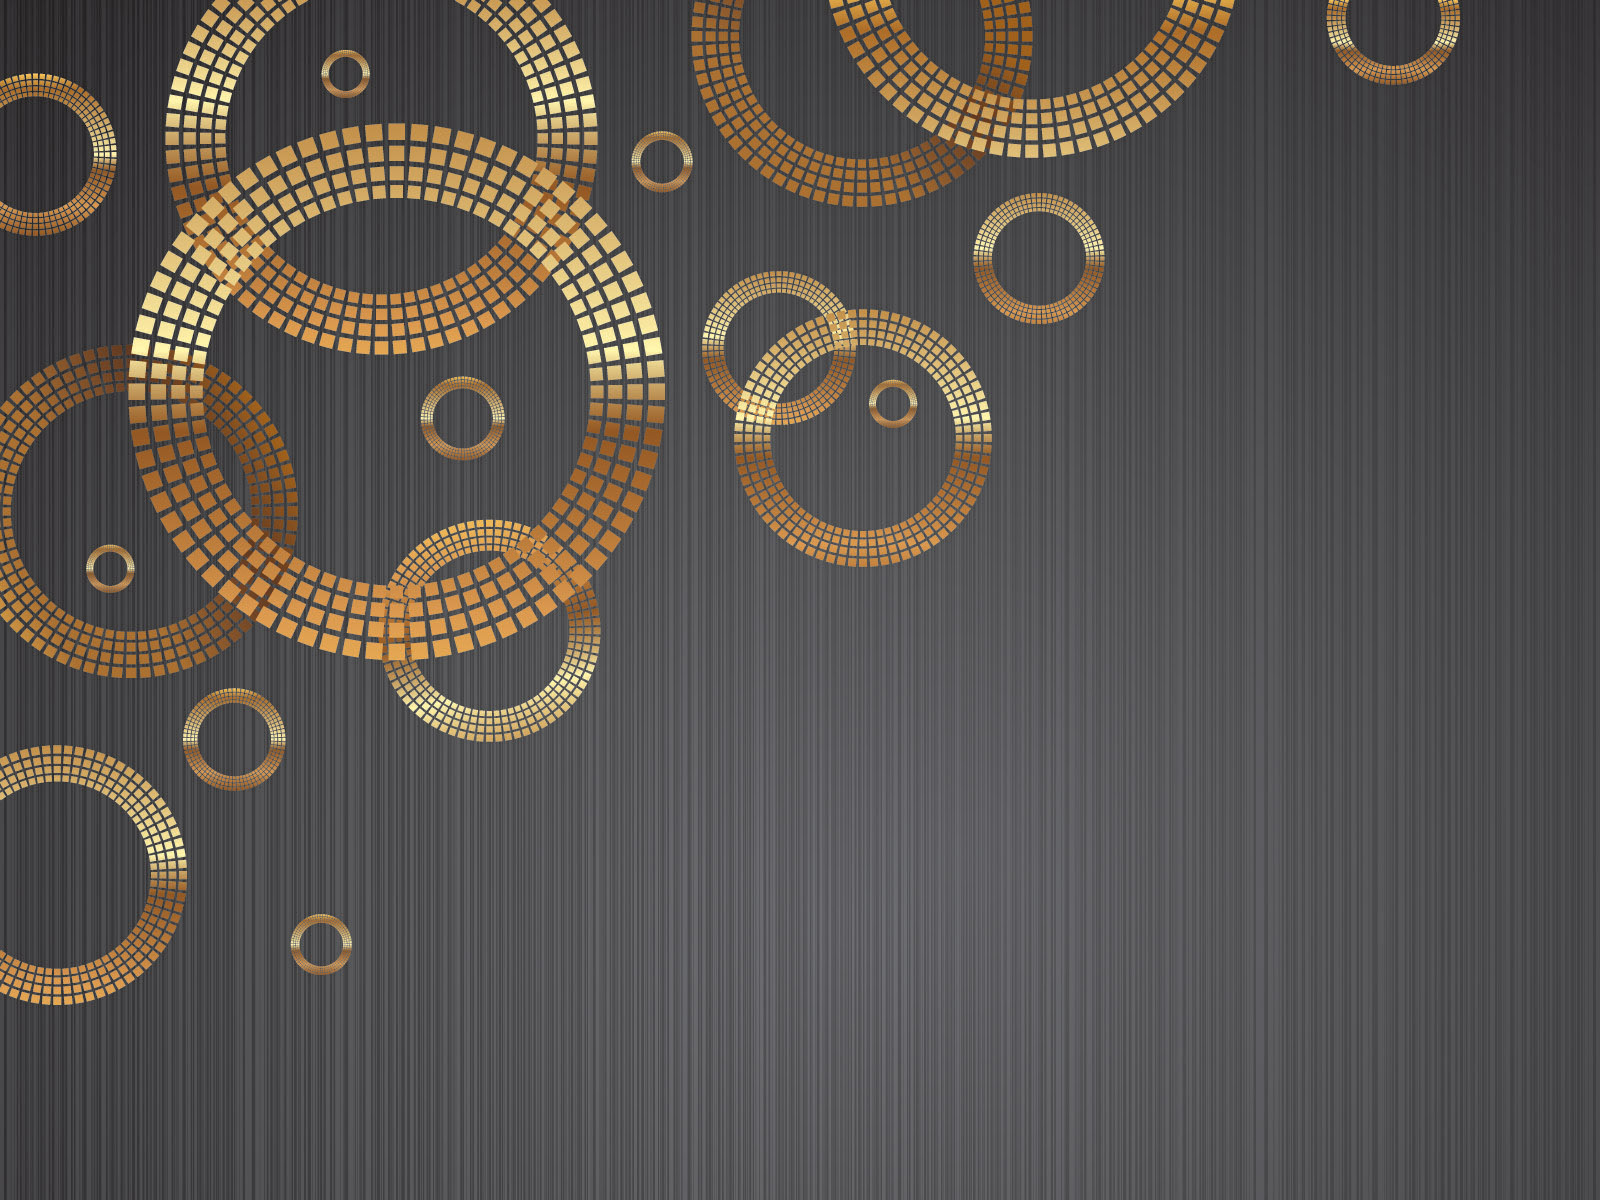 Stock rich luxury ppt backgrounds stock rich luxury ppt photos stock rich luxury toneelgroepblik Gallery